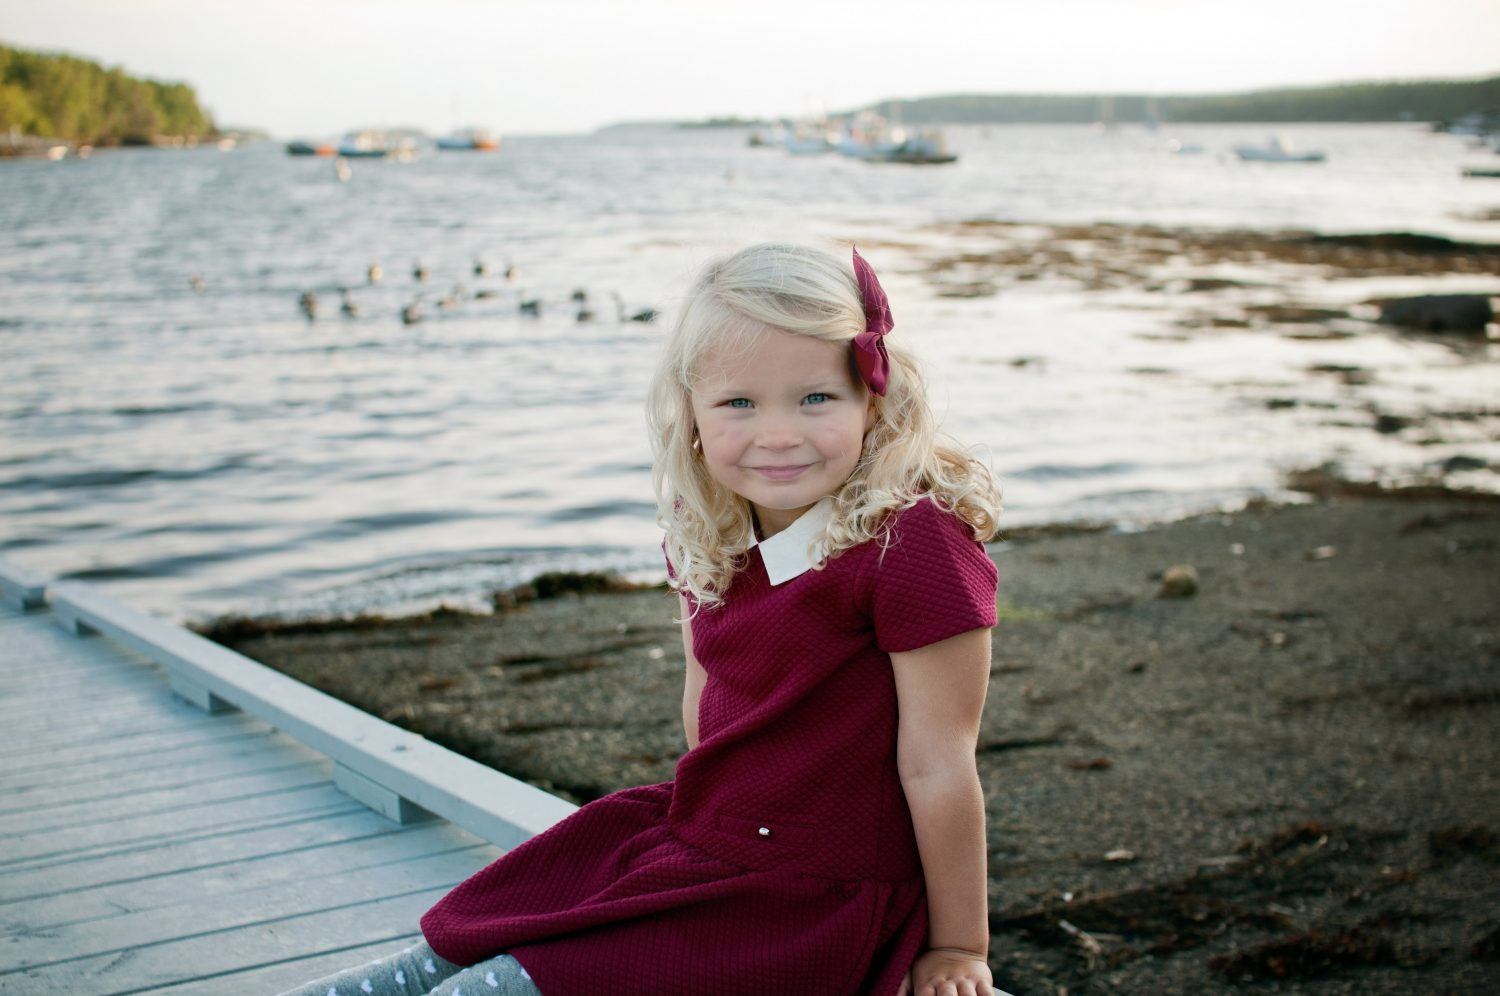 portrait of young girl in maroon dress and hair bow sitting by the waters edge